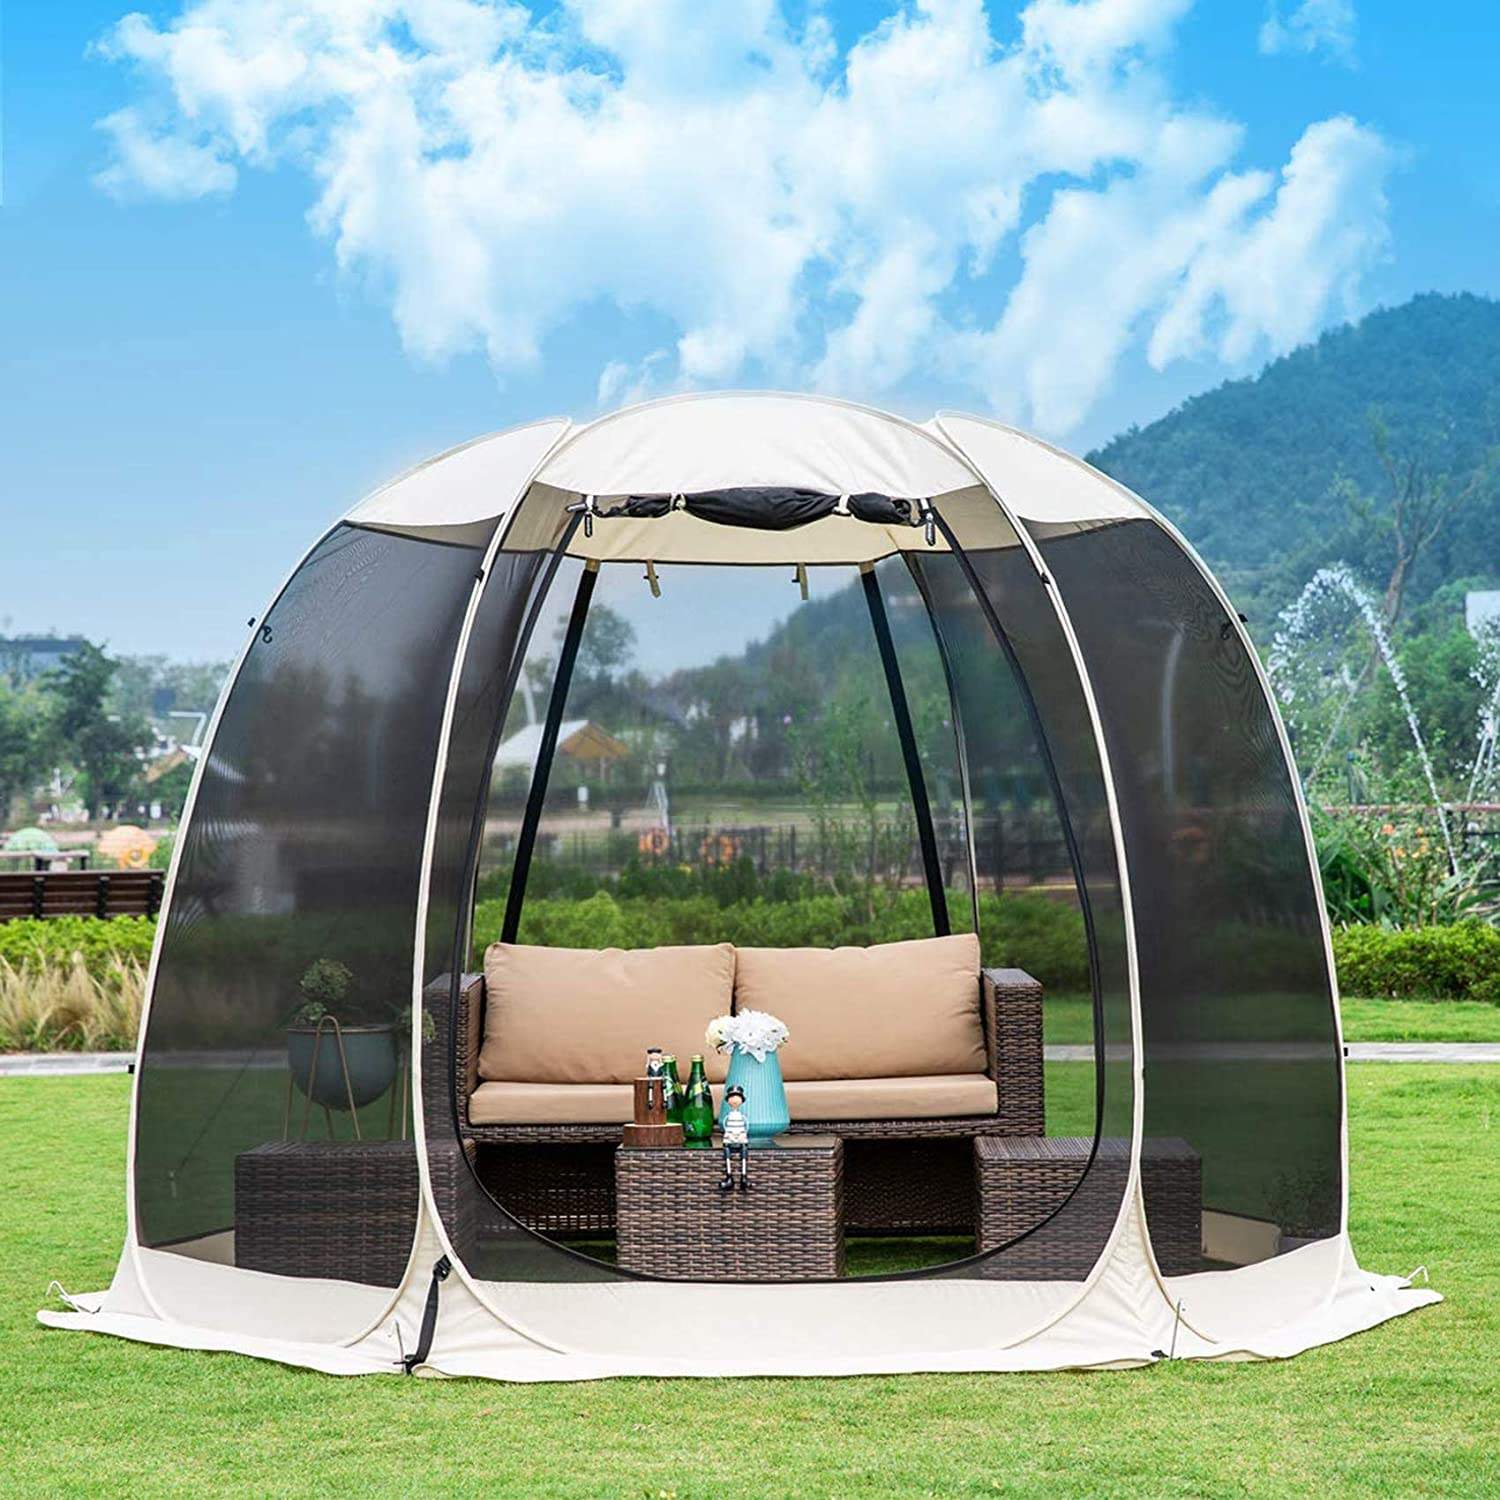 Gazebos for Patios Screen House Canopy Mosquito Net Camping Tent Dining Pop Up Sun Shade Shelter